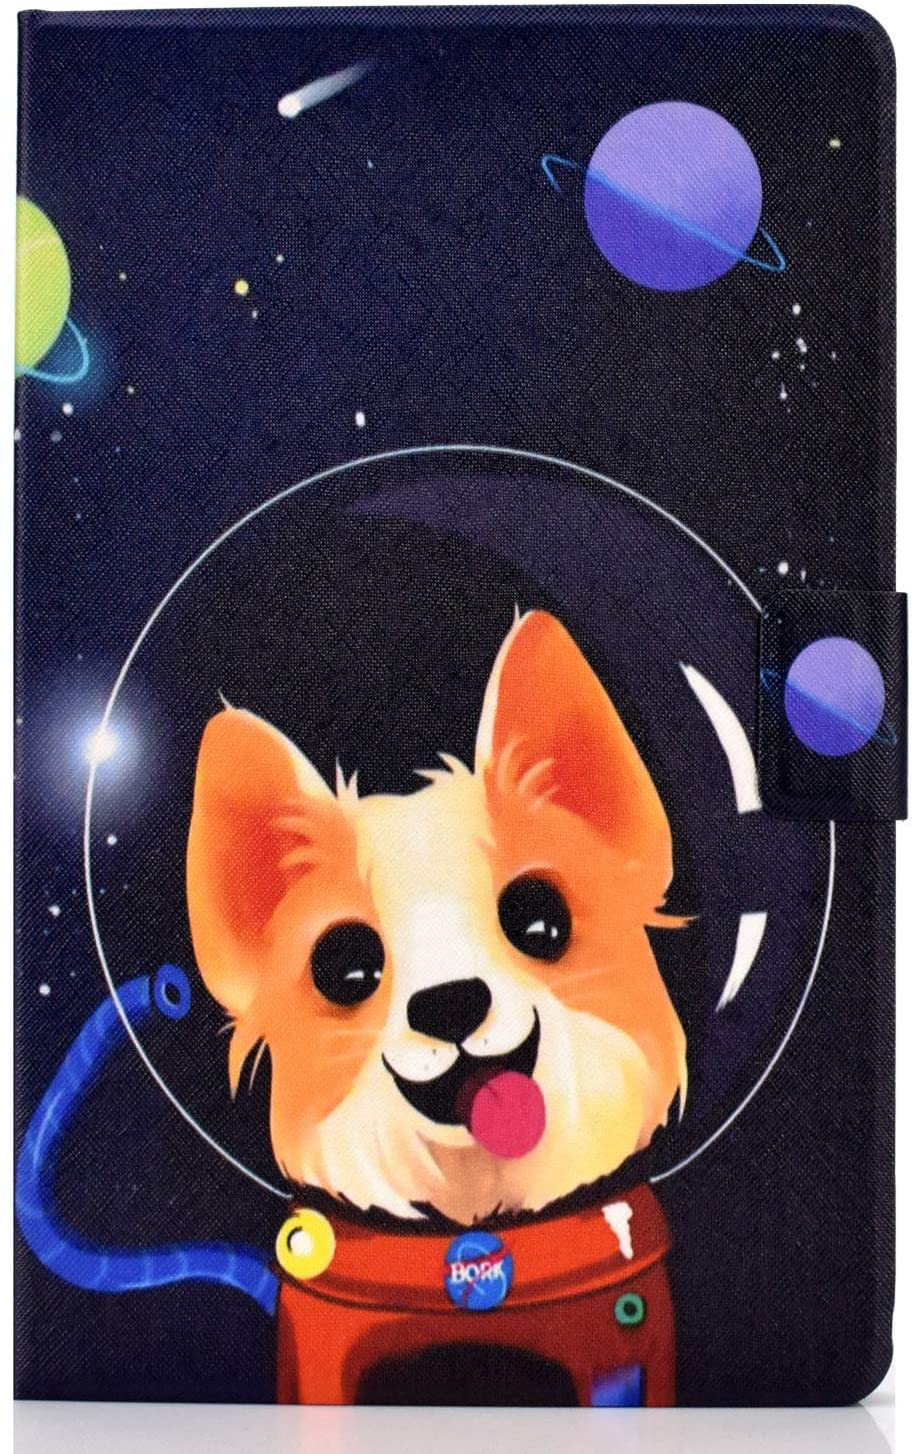 Pefcase Samsung Galaxy Tab A 10.1 2019 Case, Multi-Angle Viewing Protective PU Leather Folio Cover for Samsung Galaxy Tab A 10.1 Inch SM-T510/SM-T515 2019 Release Tablet - Lovely Puppy